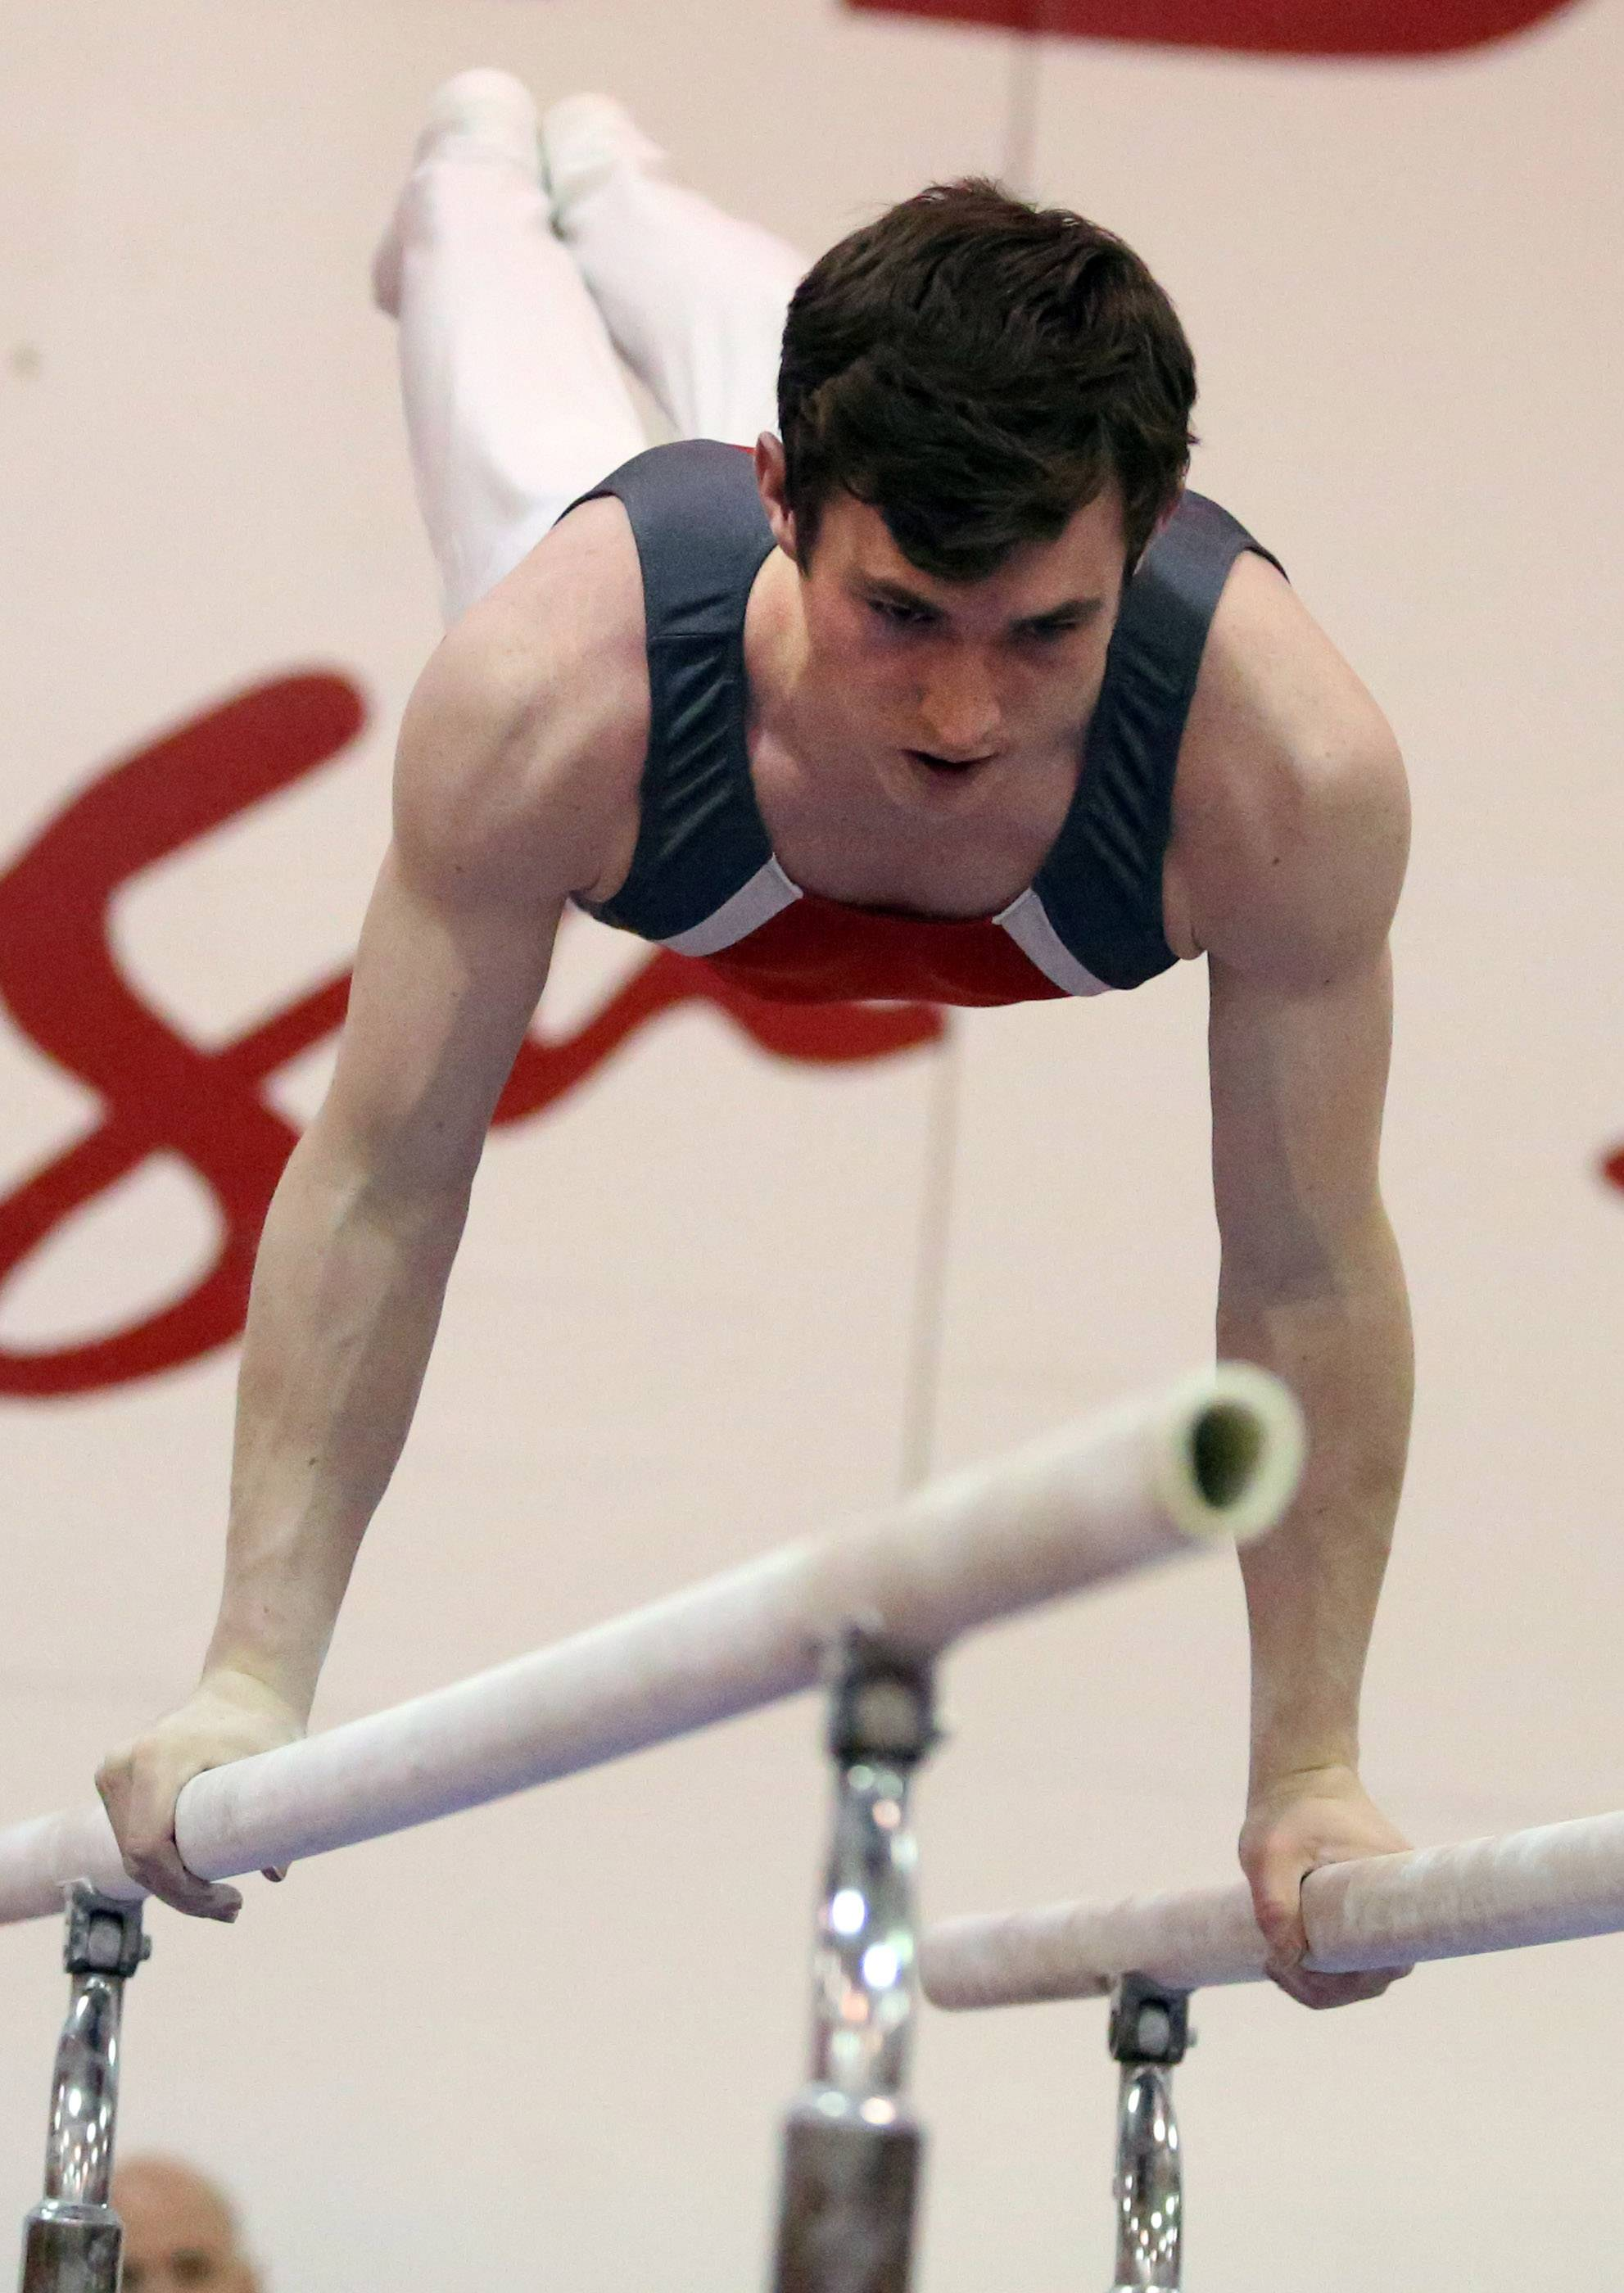 Mundelein's Cameron Mueller on the parallel bars at the Mundelein boys gymnastics sectional on Saturday.